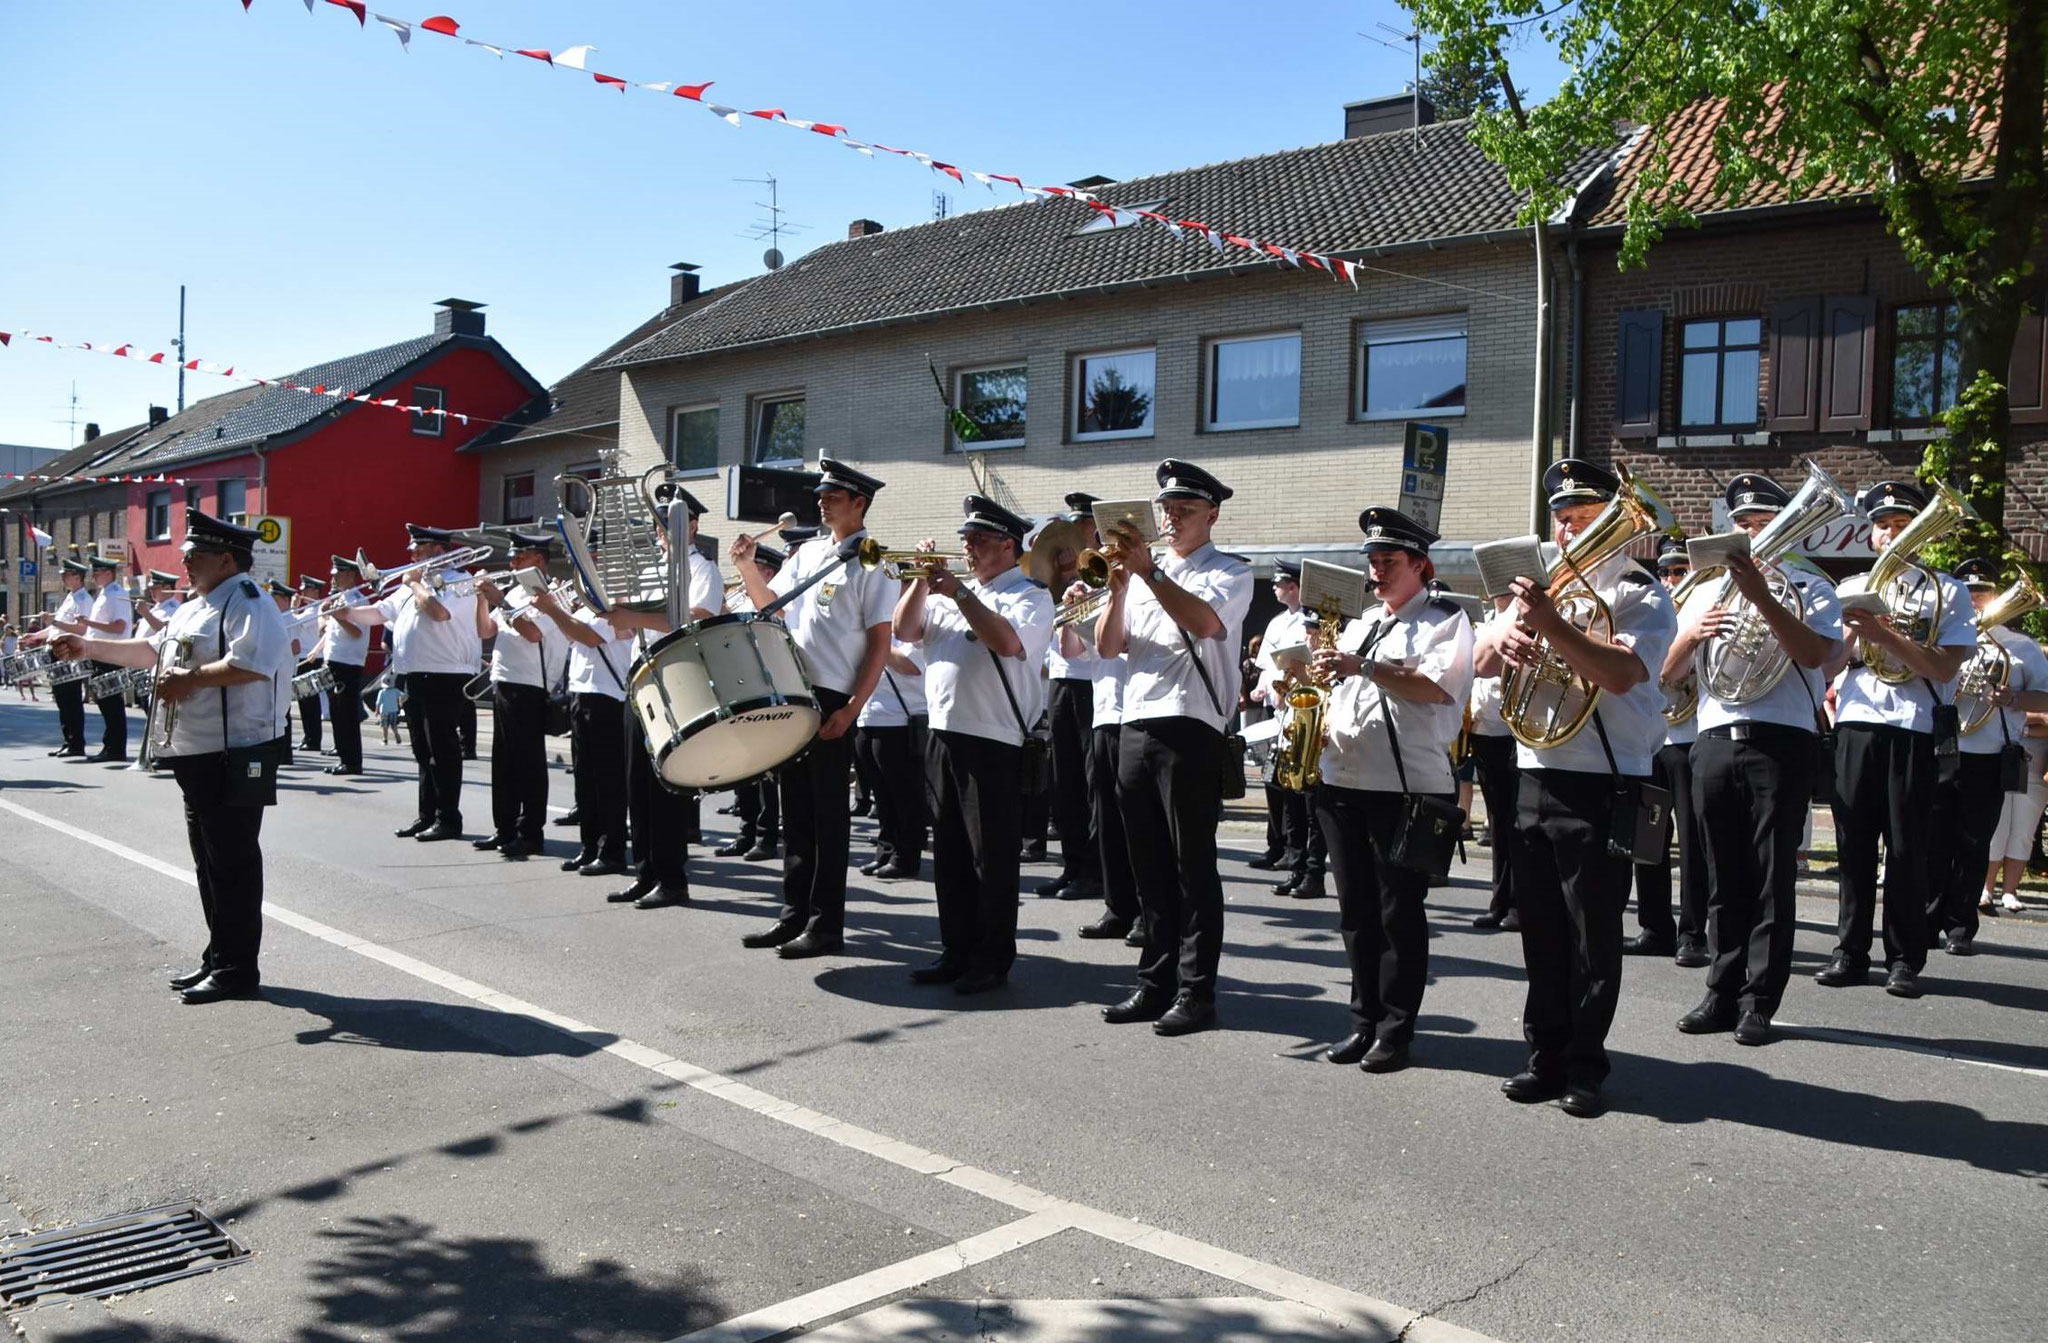 Parade in Hardt 2016